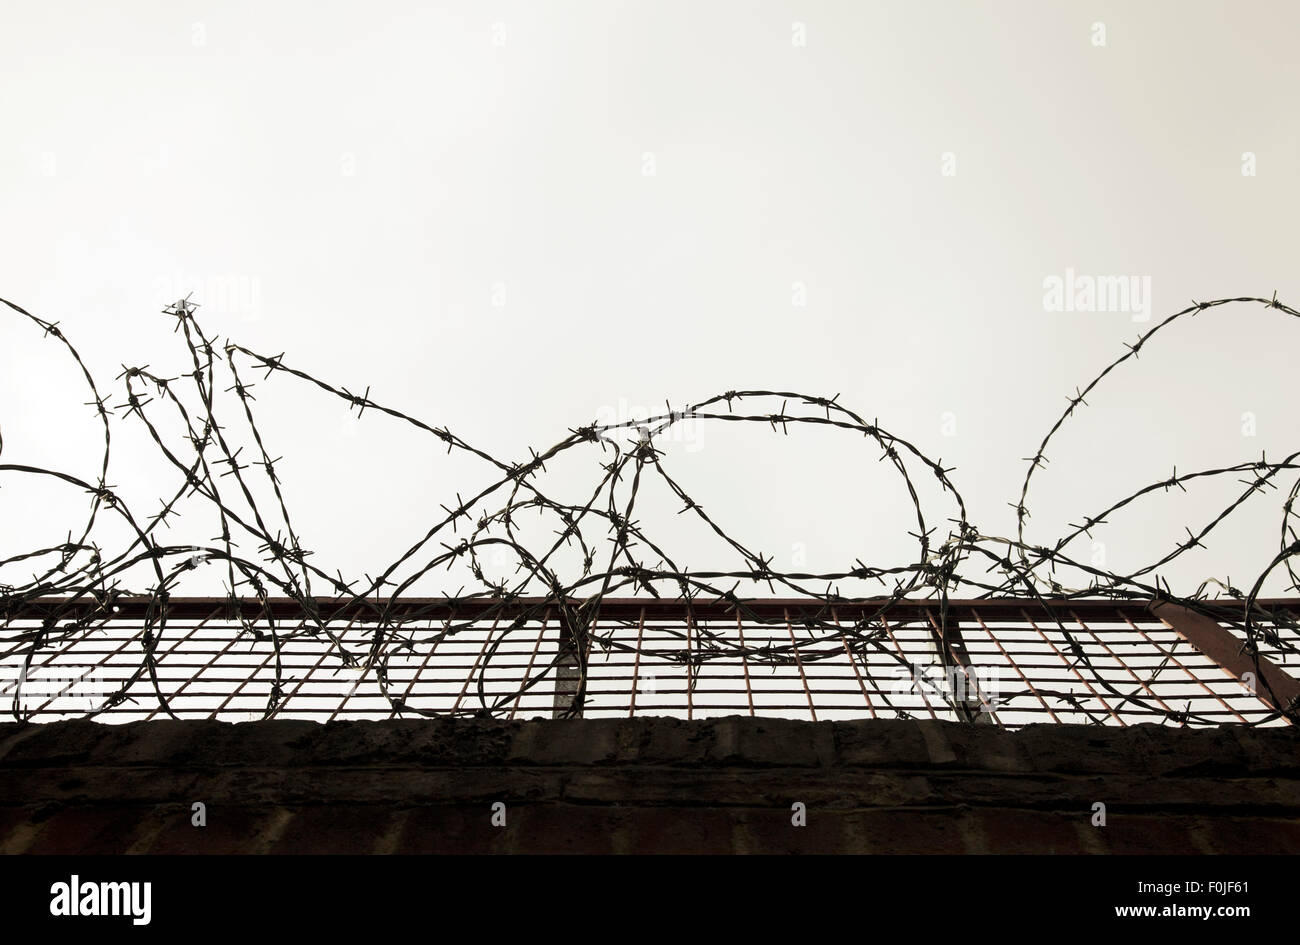 Barb Wire Fence - Stock Image